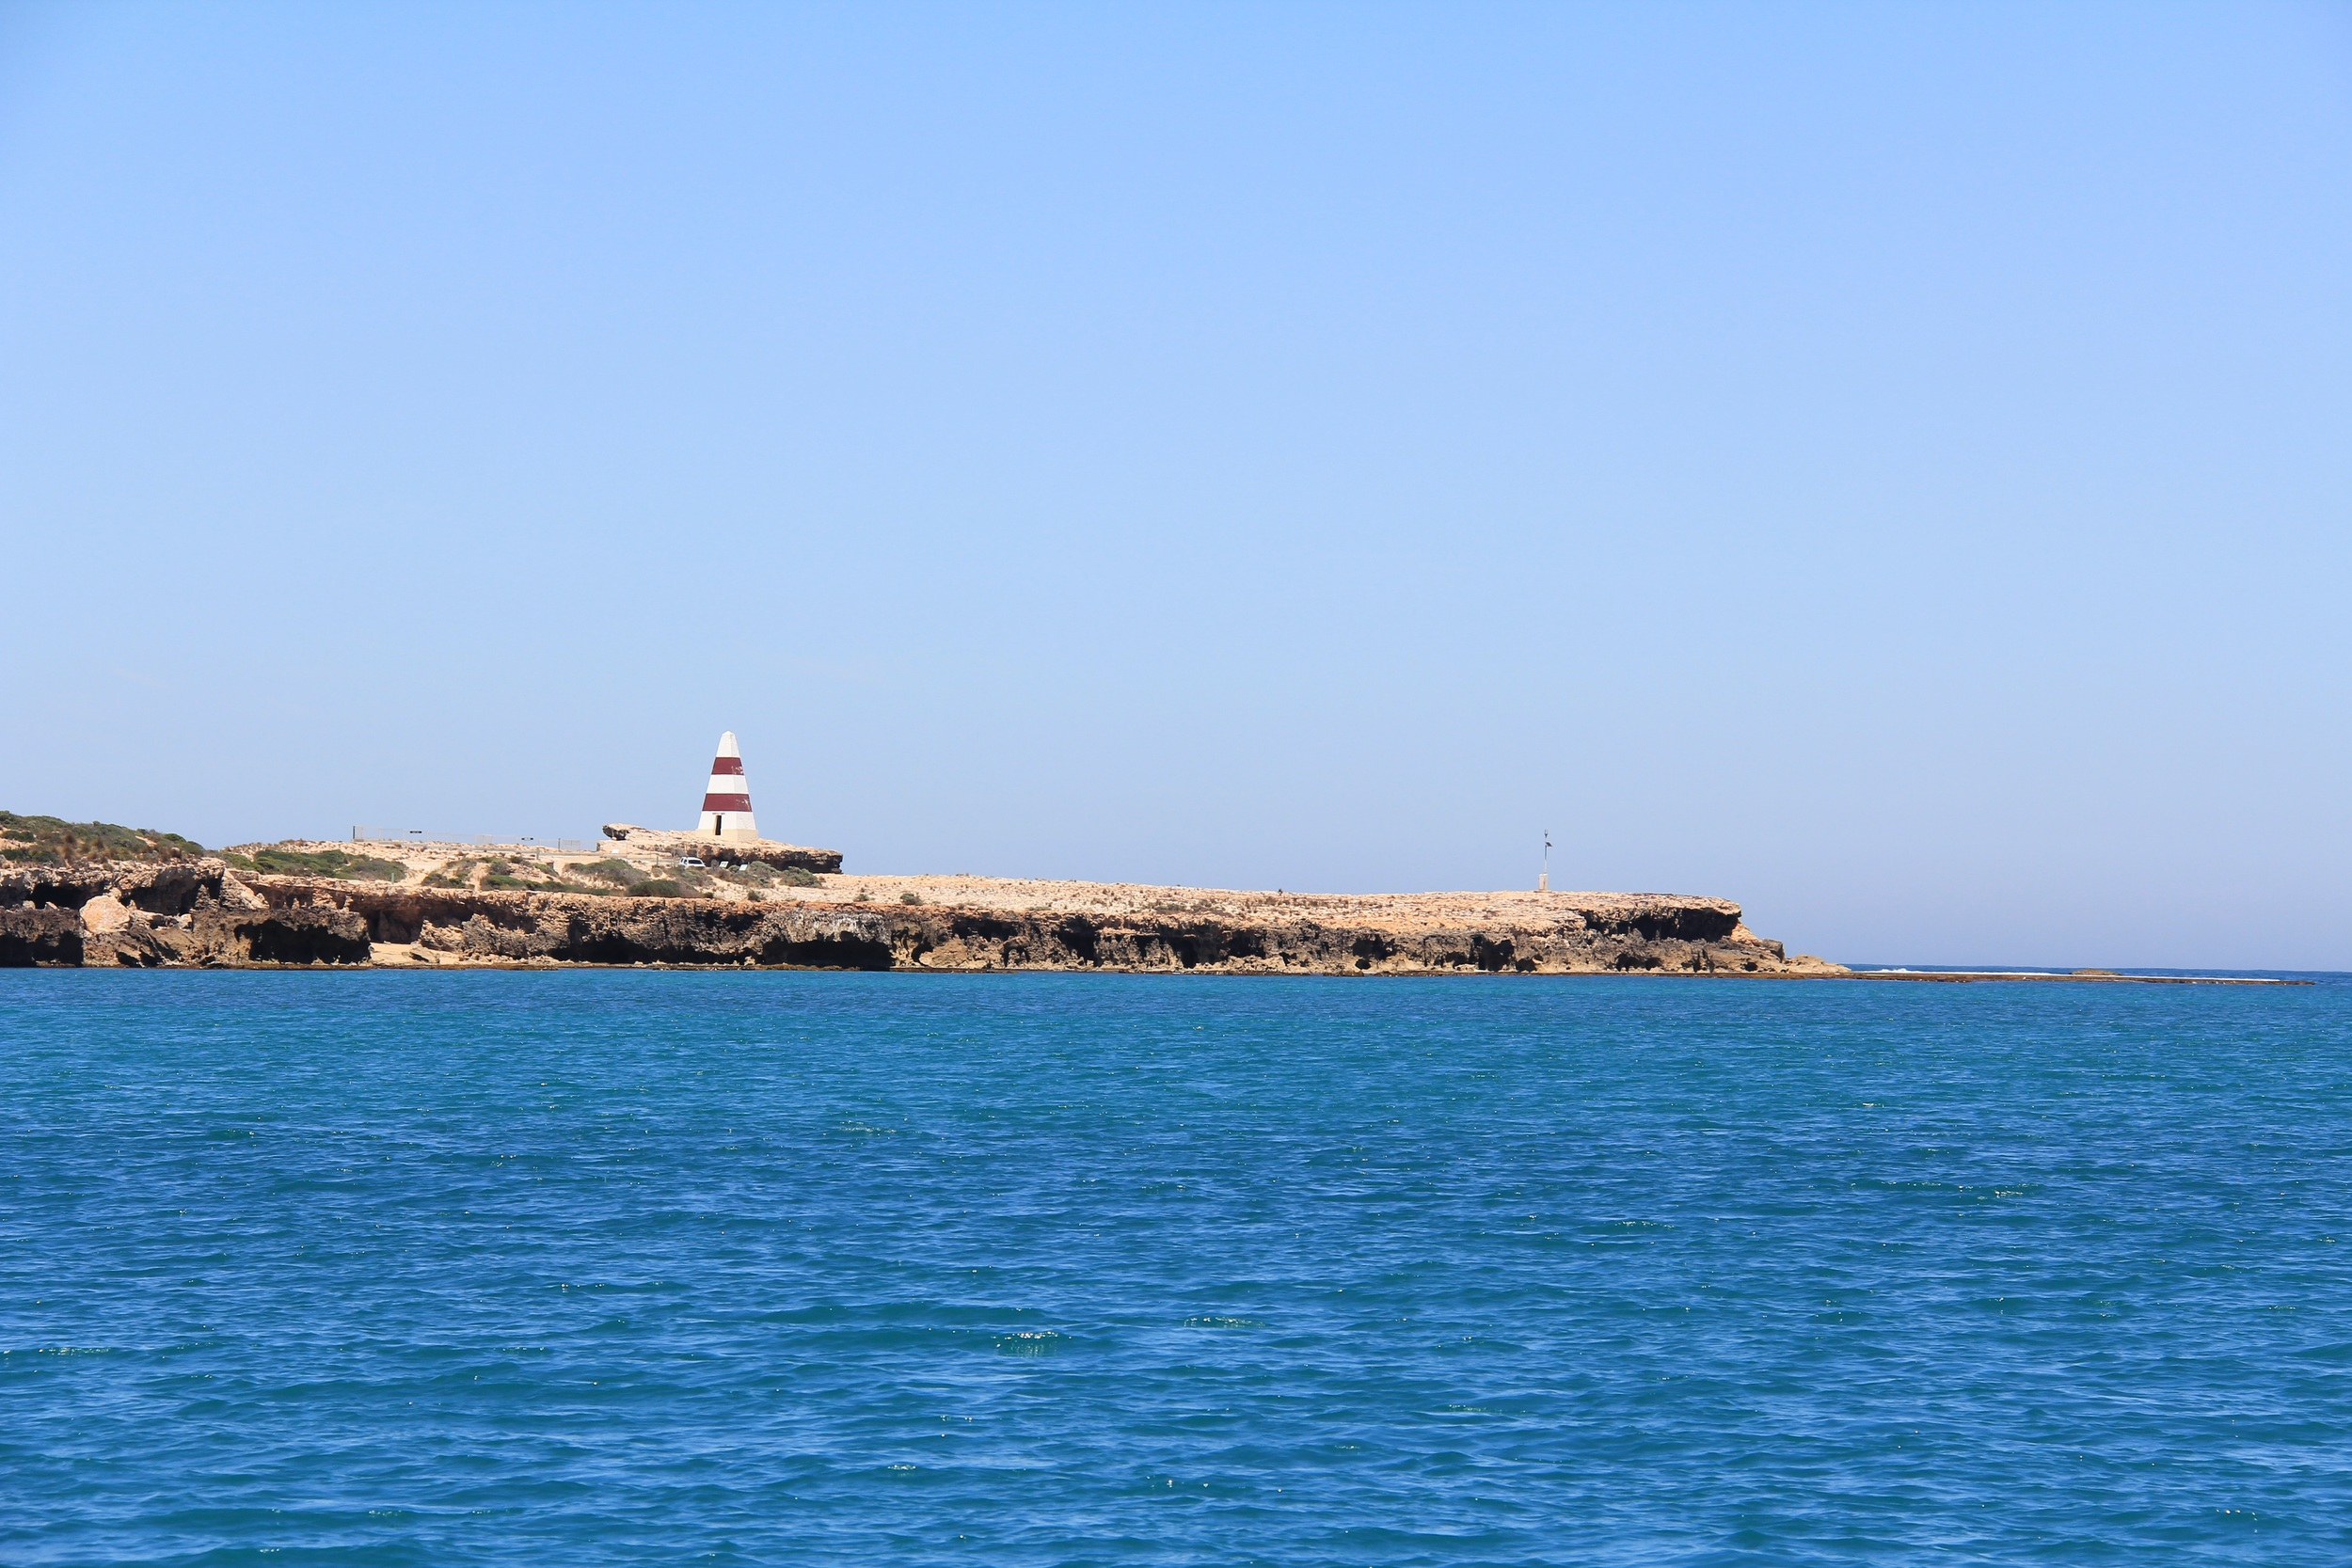 A view of the Robe Obelisk from sea